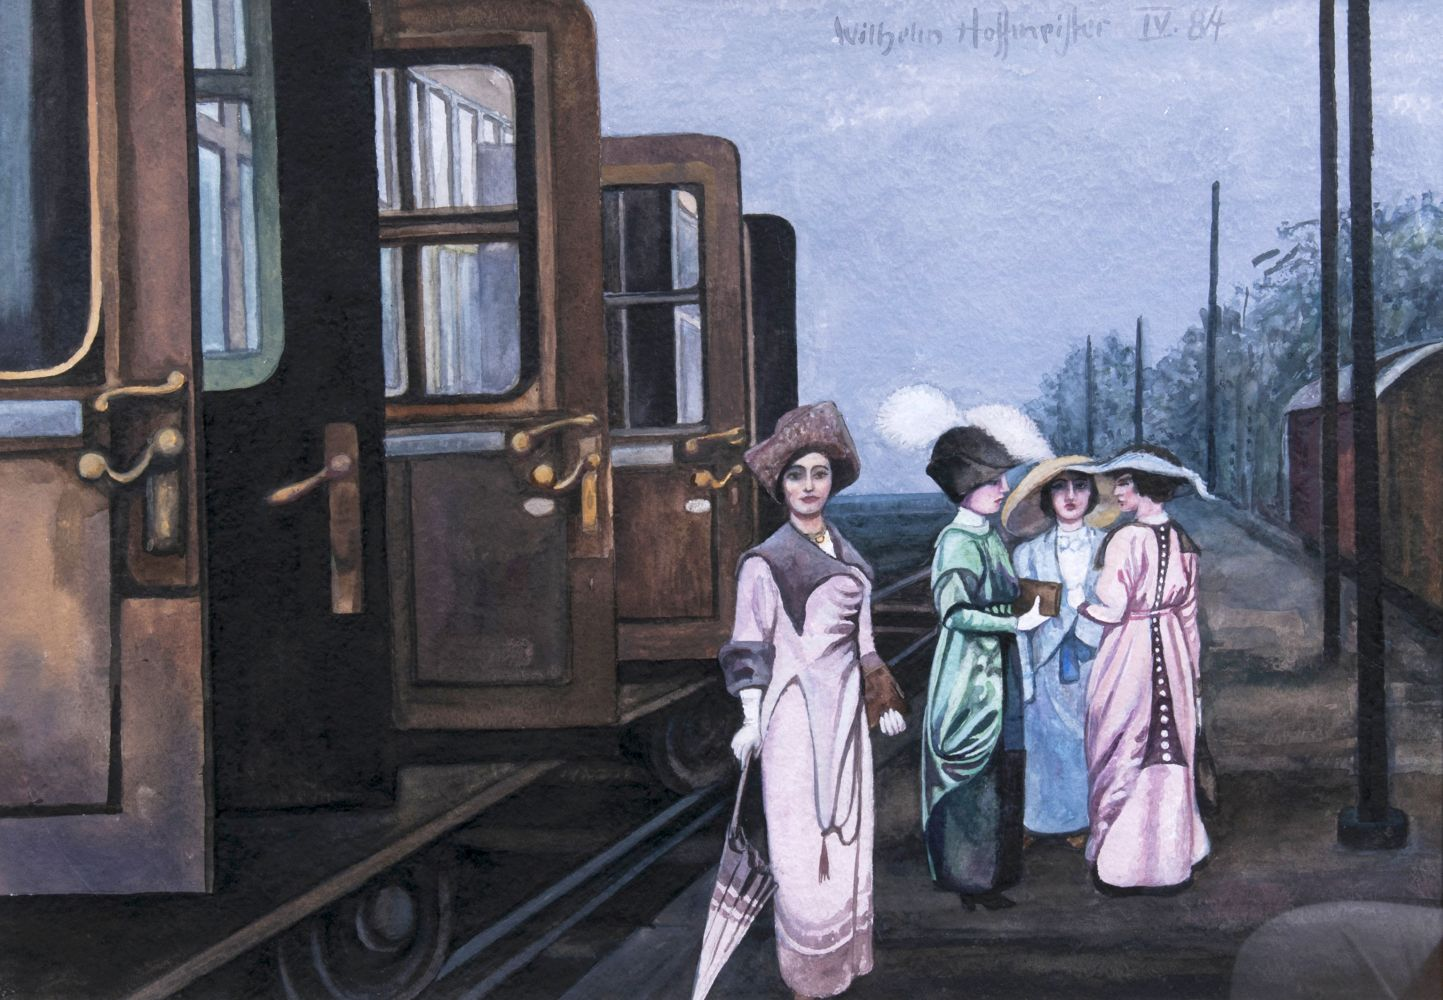 Ladies in a Station